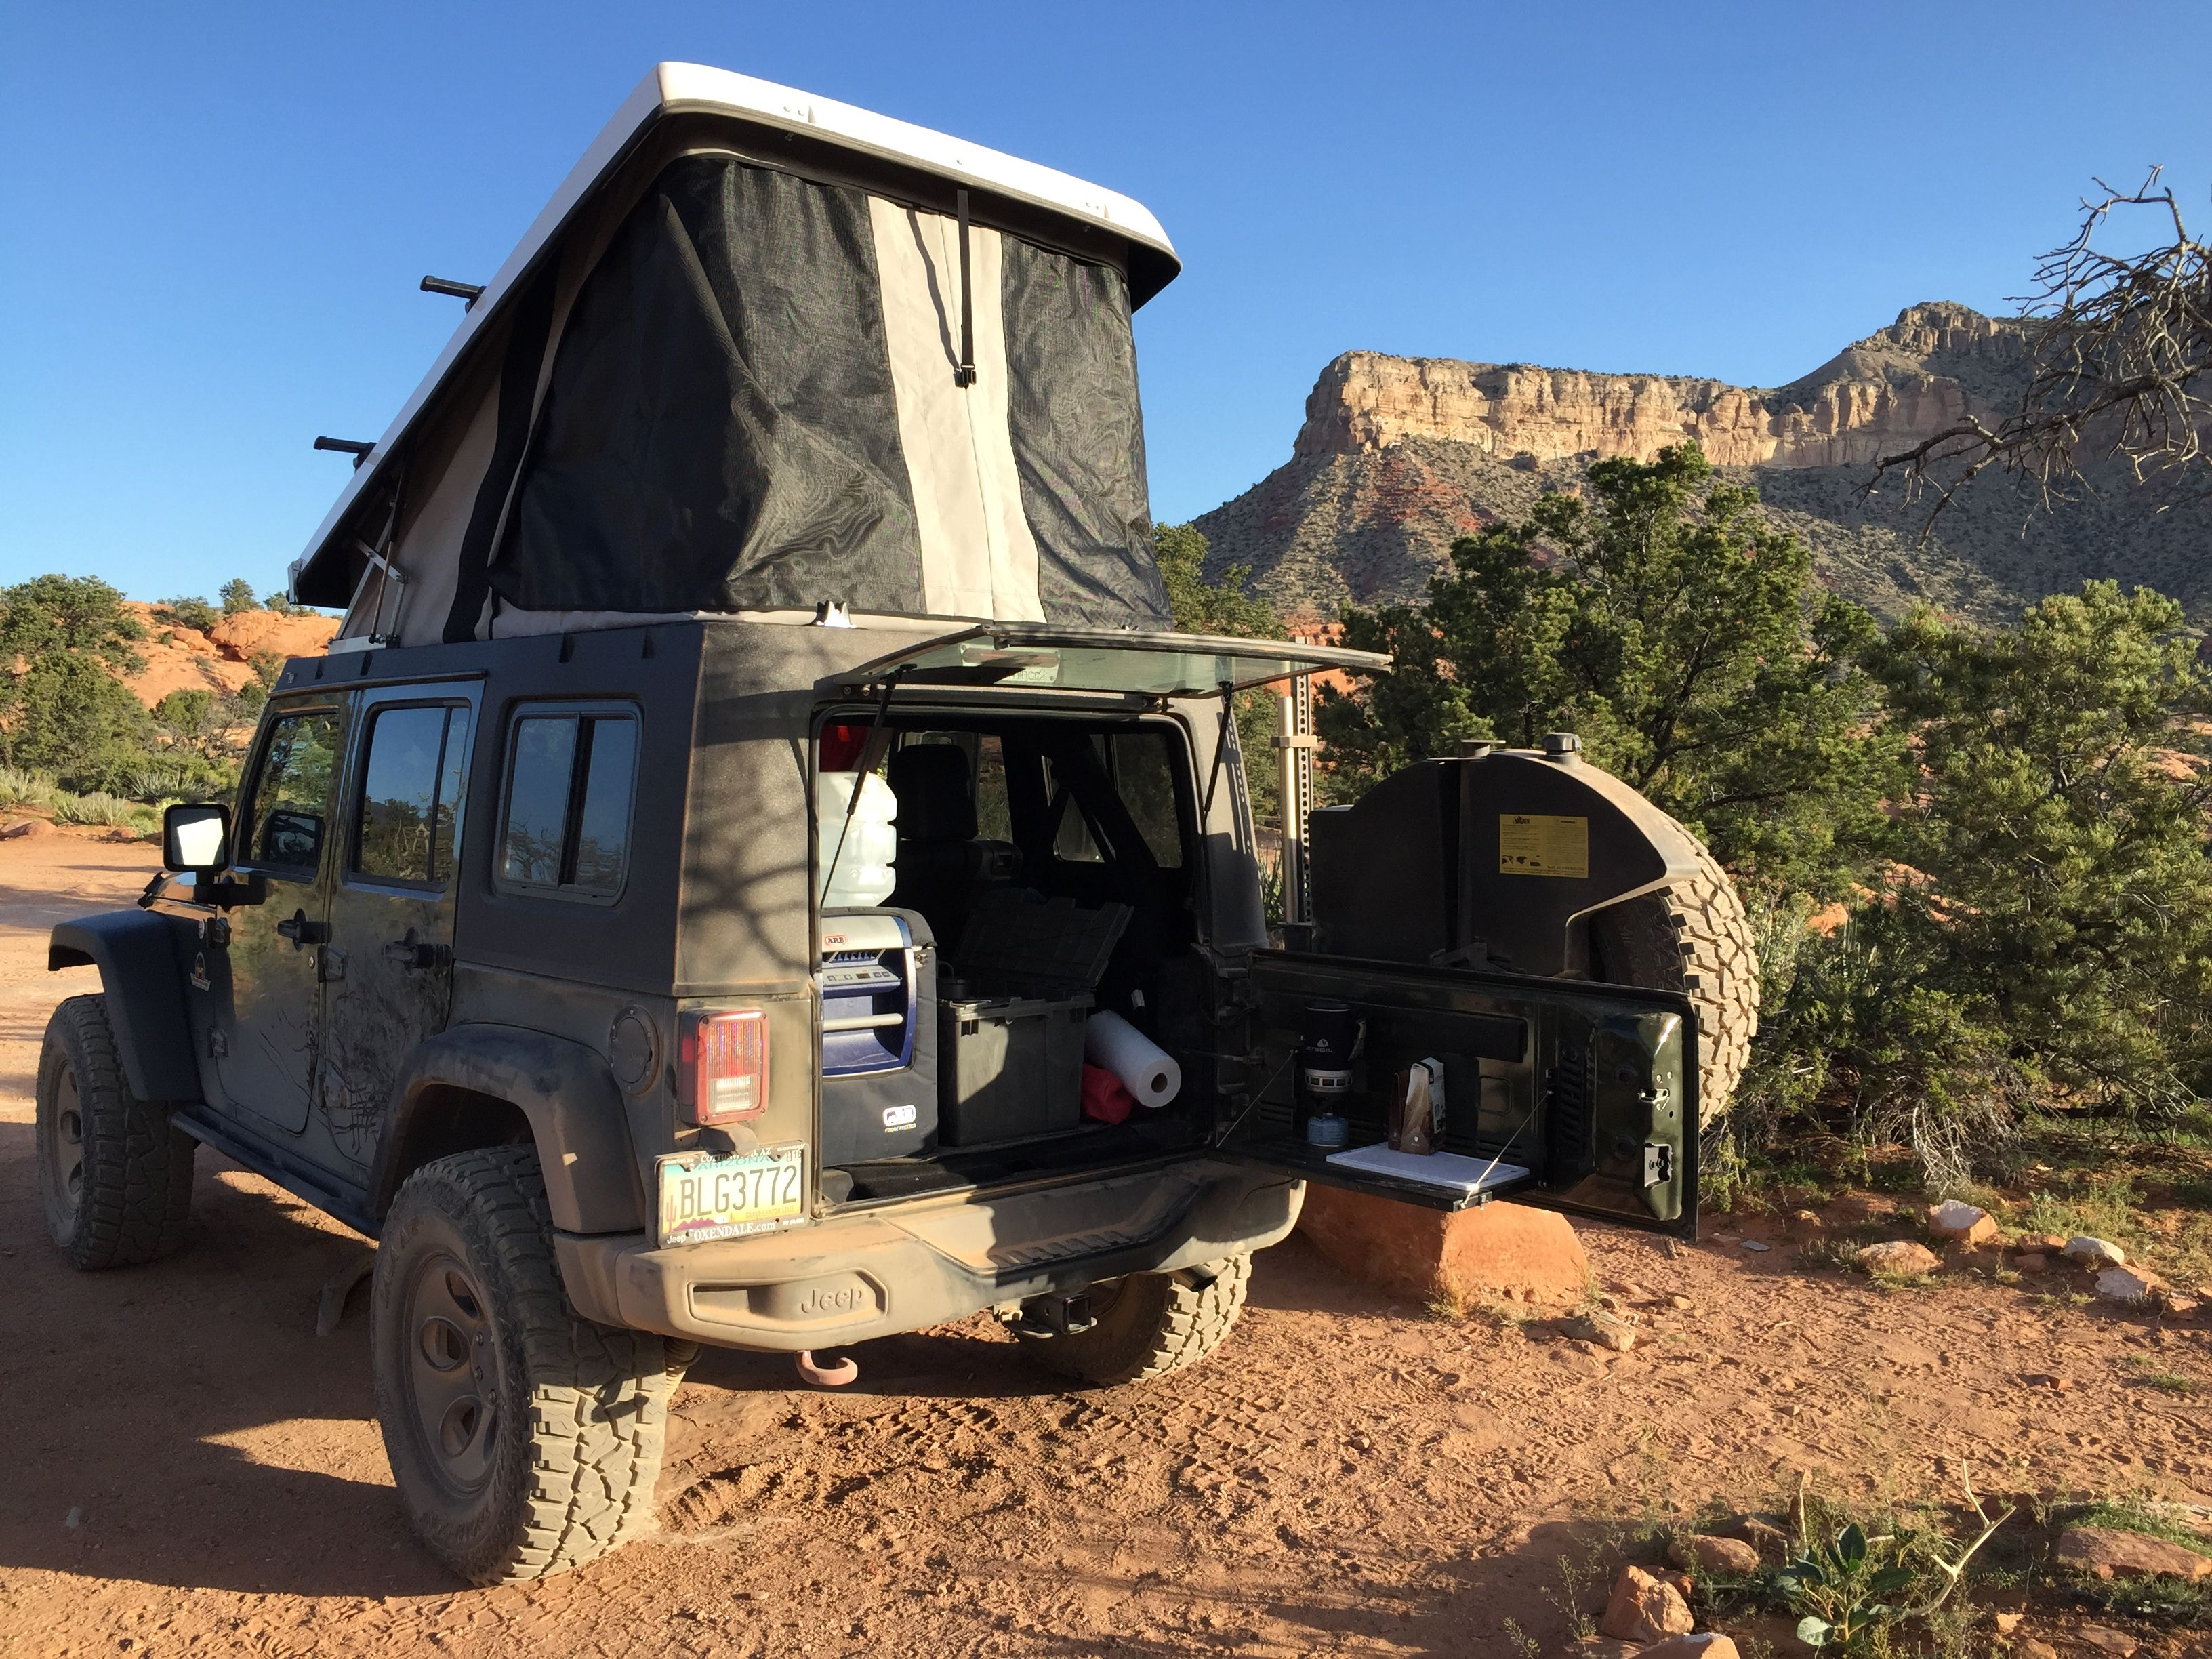 Camping With The Ursa Minor Rooftop Tent On A Jeep Wrangler At Leaking Roof Toroweap Az Arb Fridge Teraflex Tailgate Table